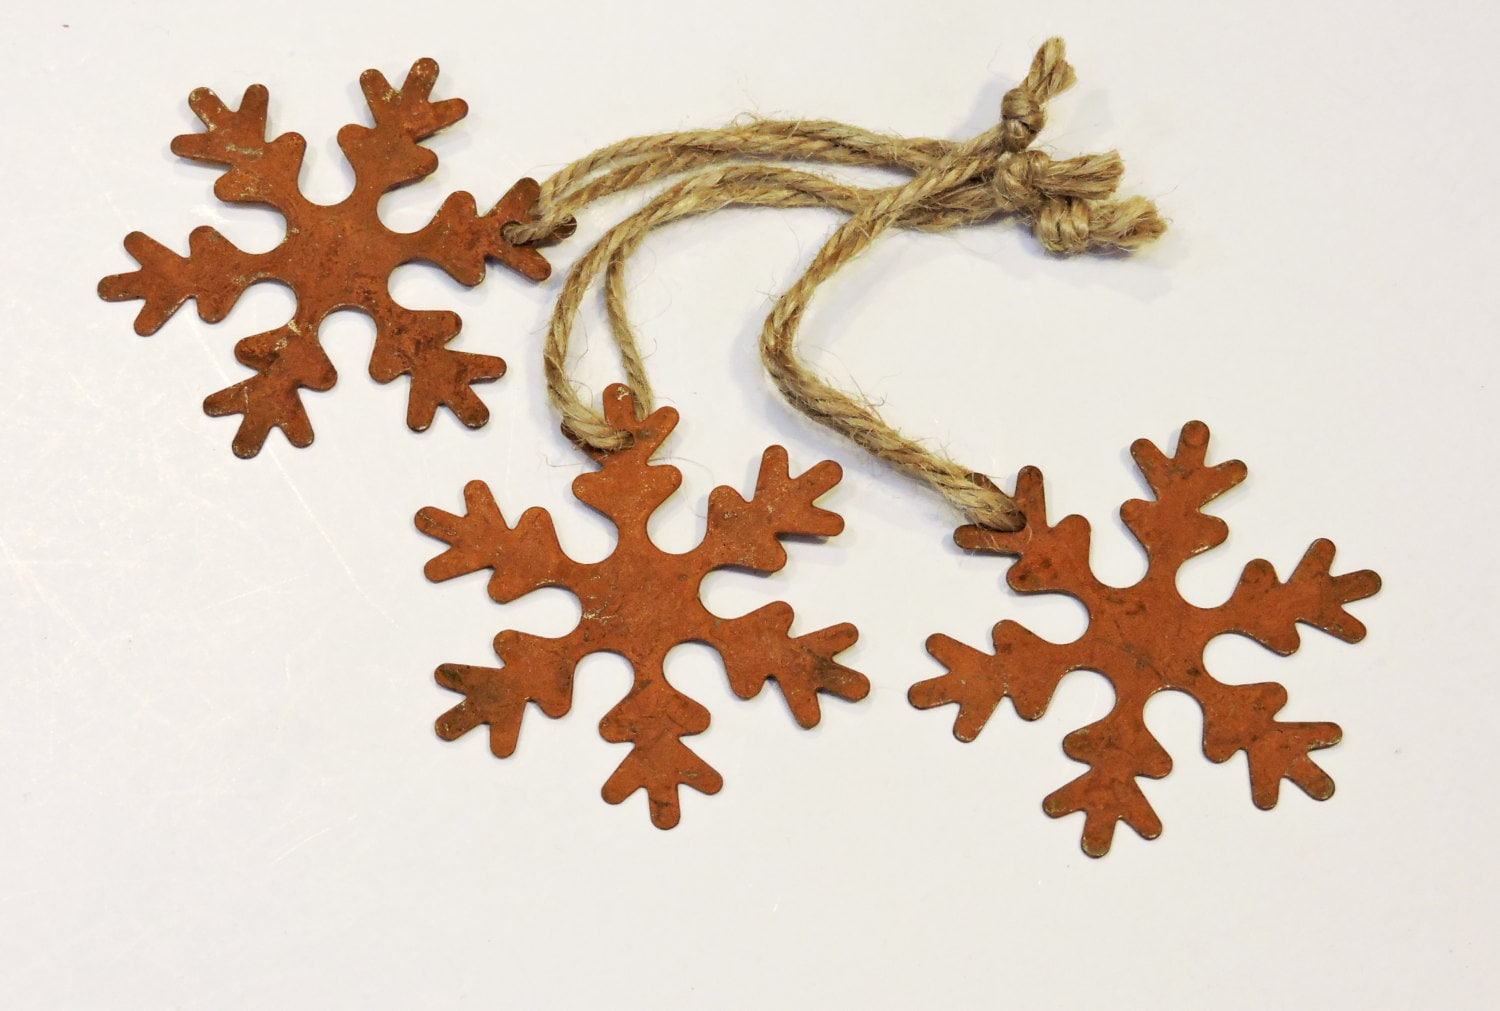 Christmas snowflake ornaments - Primitive Rustic Snowflakes Rusty Look Metal Christmas Ornaments Prim Miniature Tin Embellishments Craft